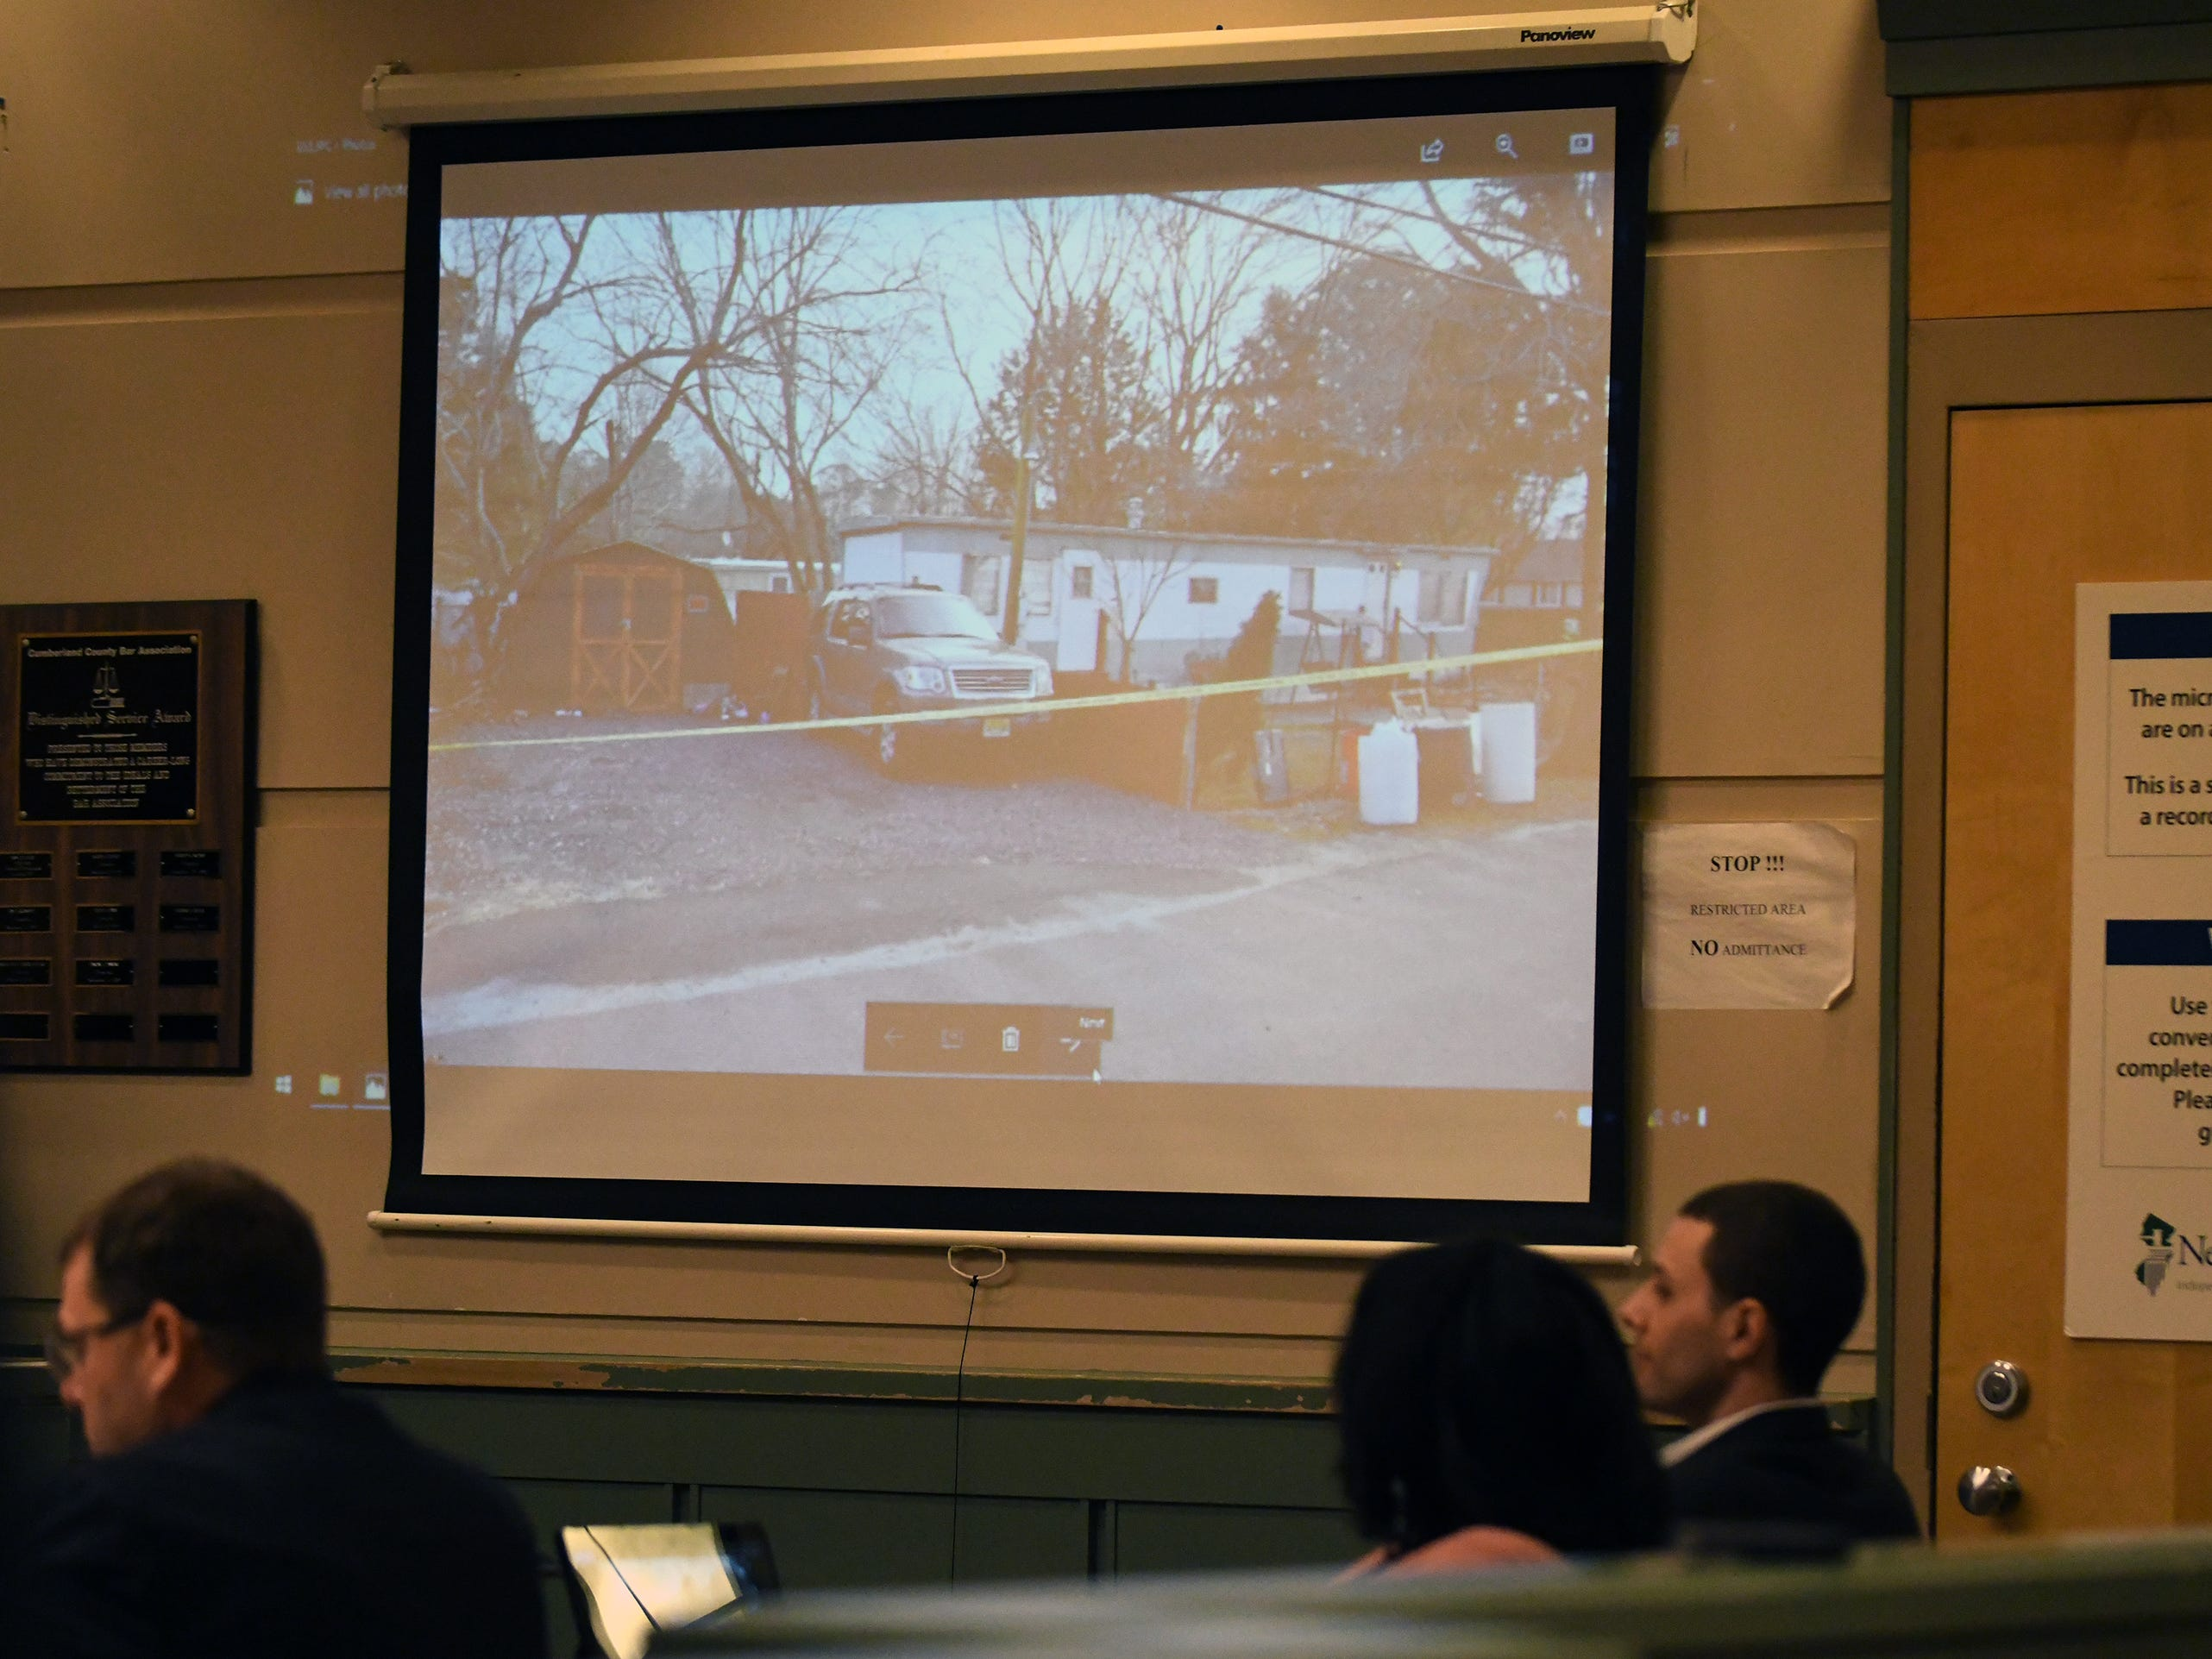 Pictures of the crime scene are shown to jurors during the murder trial of Jeremiah E. Monell in Cumberland County Superior Court on Thursday, January 3, 2019. 35-year-old Tara O'Shea-Watson was killed inside her home in the Laurel Lake section of Commercial Township on Dec. 19, 2016.